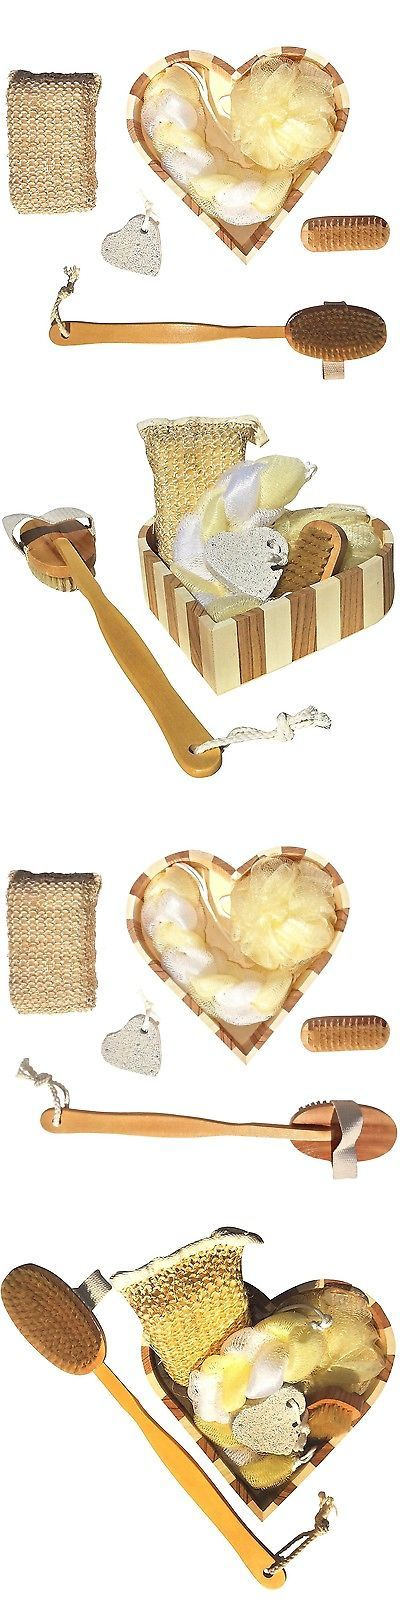 Bath Brushes and Sponges: Perfect Heart Shaped Bath Set Back Loofah Luffa Spa Best Unique Cool Back To ... -> BUY IT NOW ONLY: $35.82 on eBay!